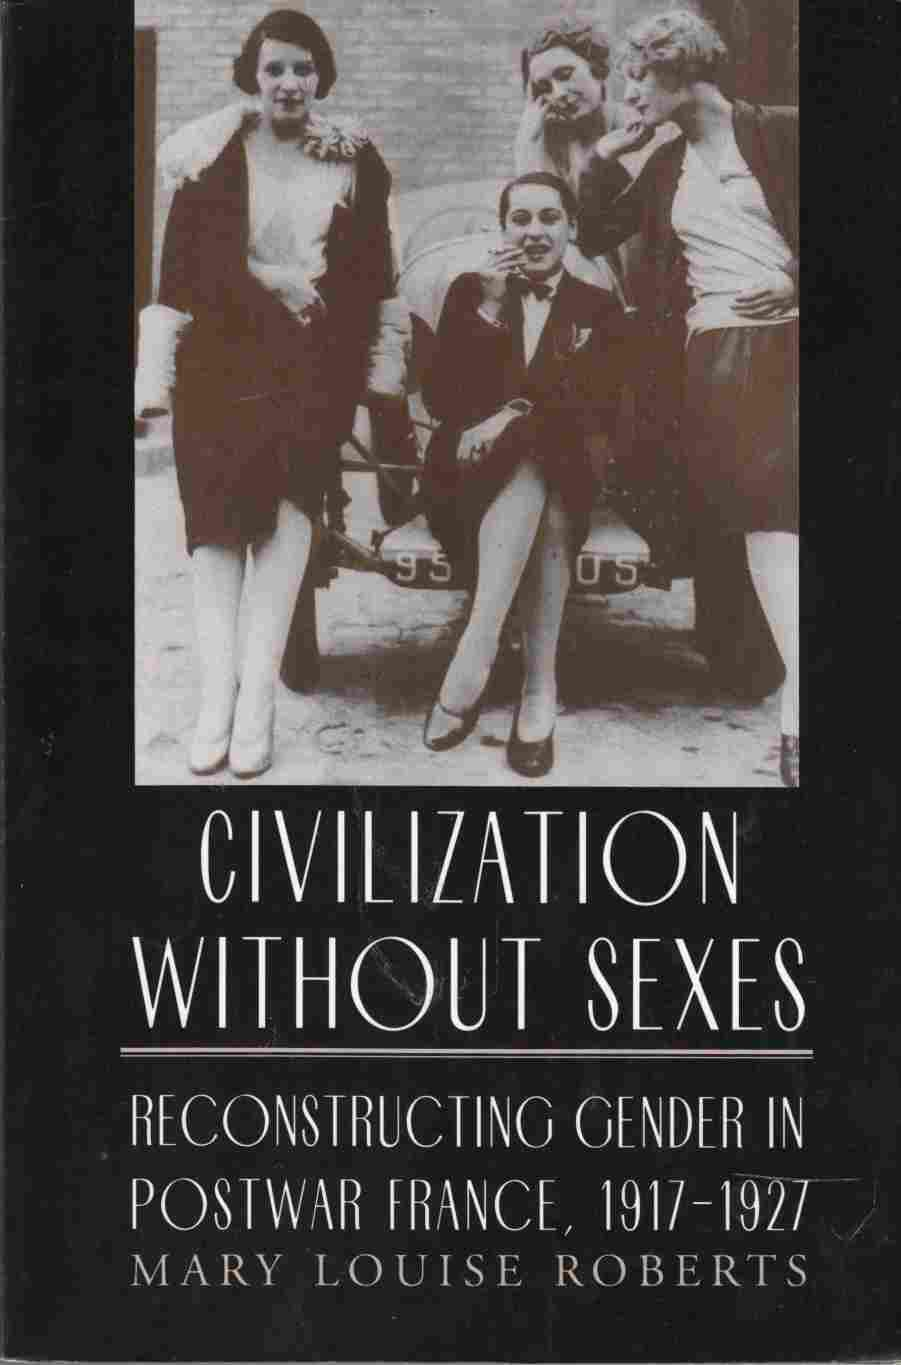 Image for Civilization Without Sexes: Reconstructing Gender in Postwar France, 1917-1927